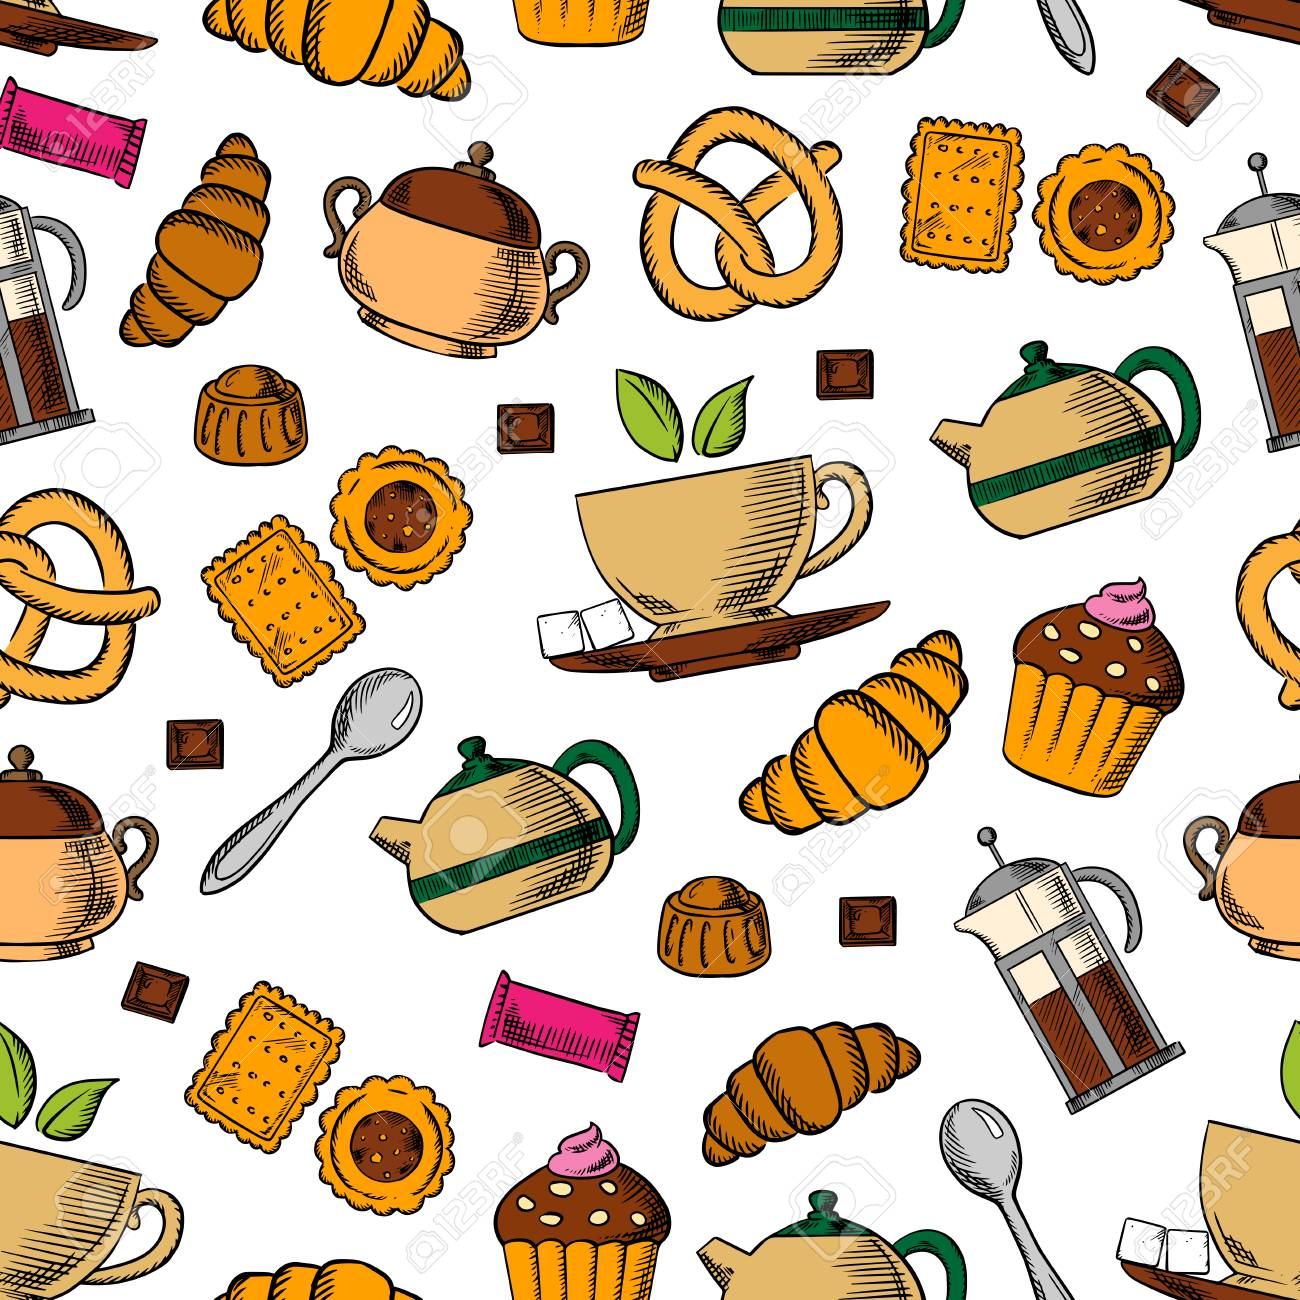 Retro seamless tea and sweets pattern with porcelain cups of fresh tea, chocolate, croissants, cupcakes, cookies, pretzels, candies, teapots and sugar bowls on white background. Tea party, breakfast theme or kitchen interior design - 112253569